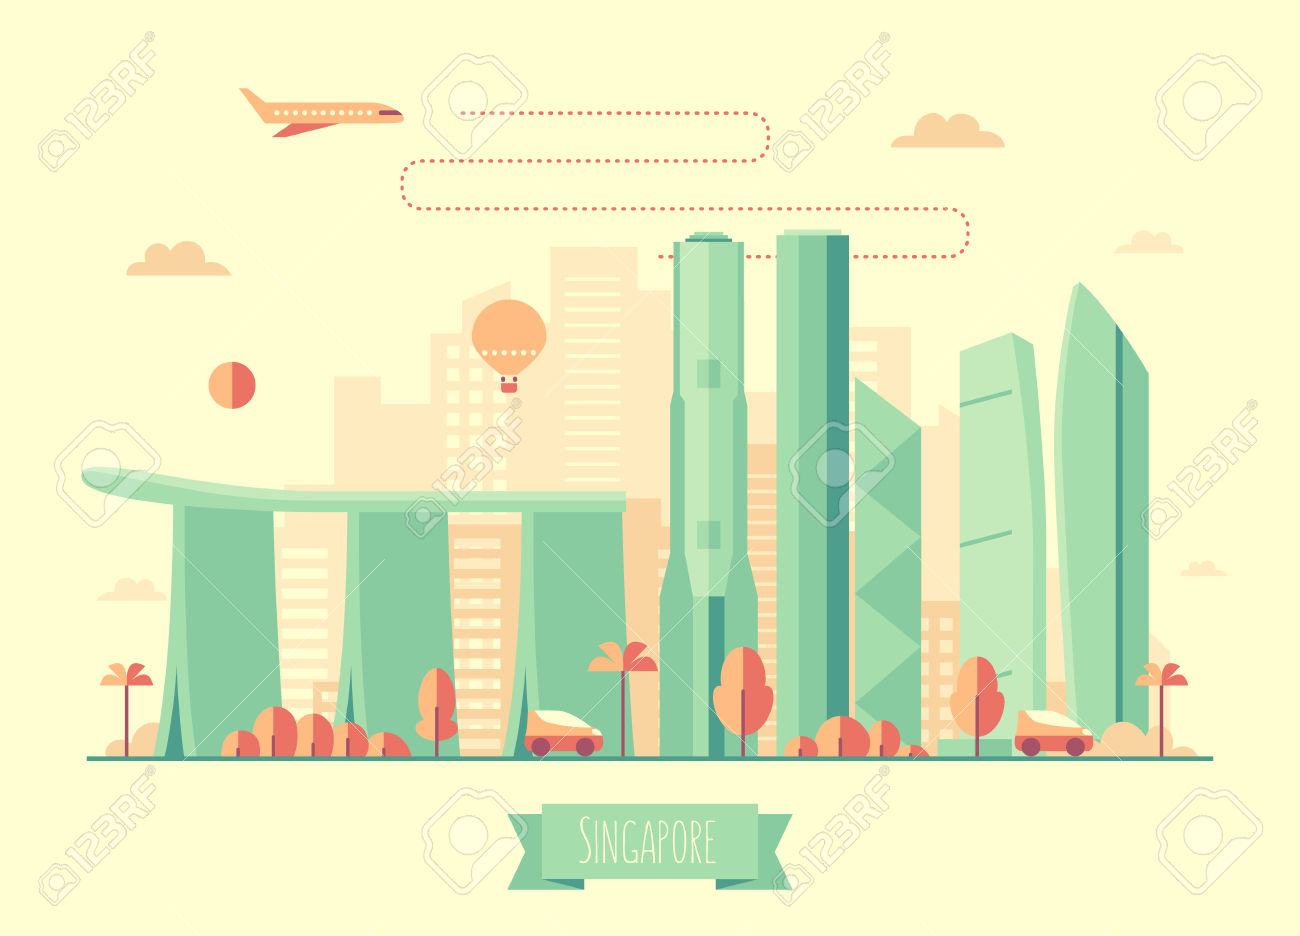 457 Singapore Skyline Stock Vector Illustration And Royalty Free.